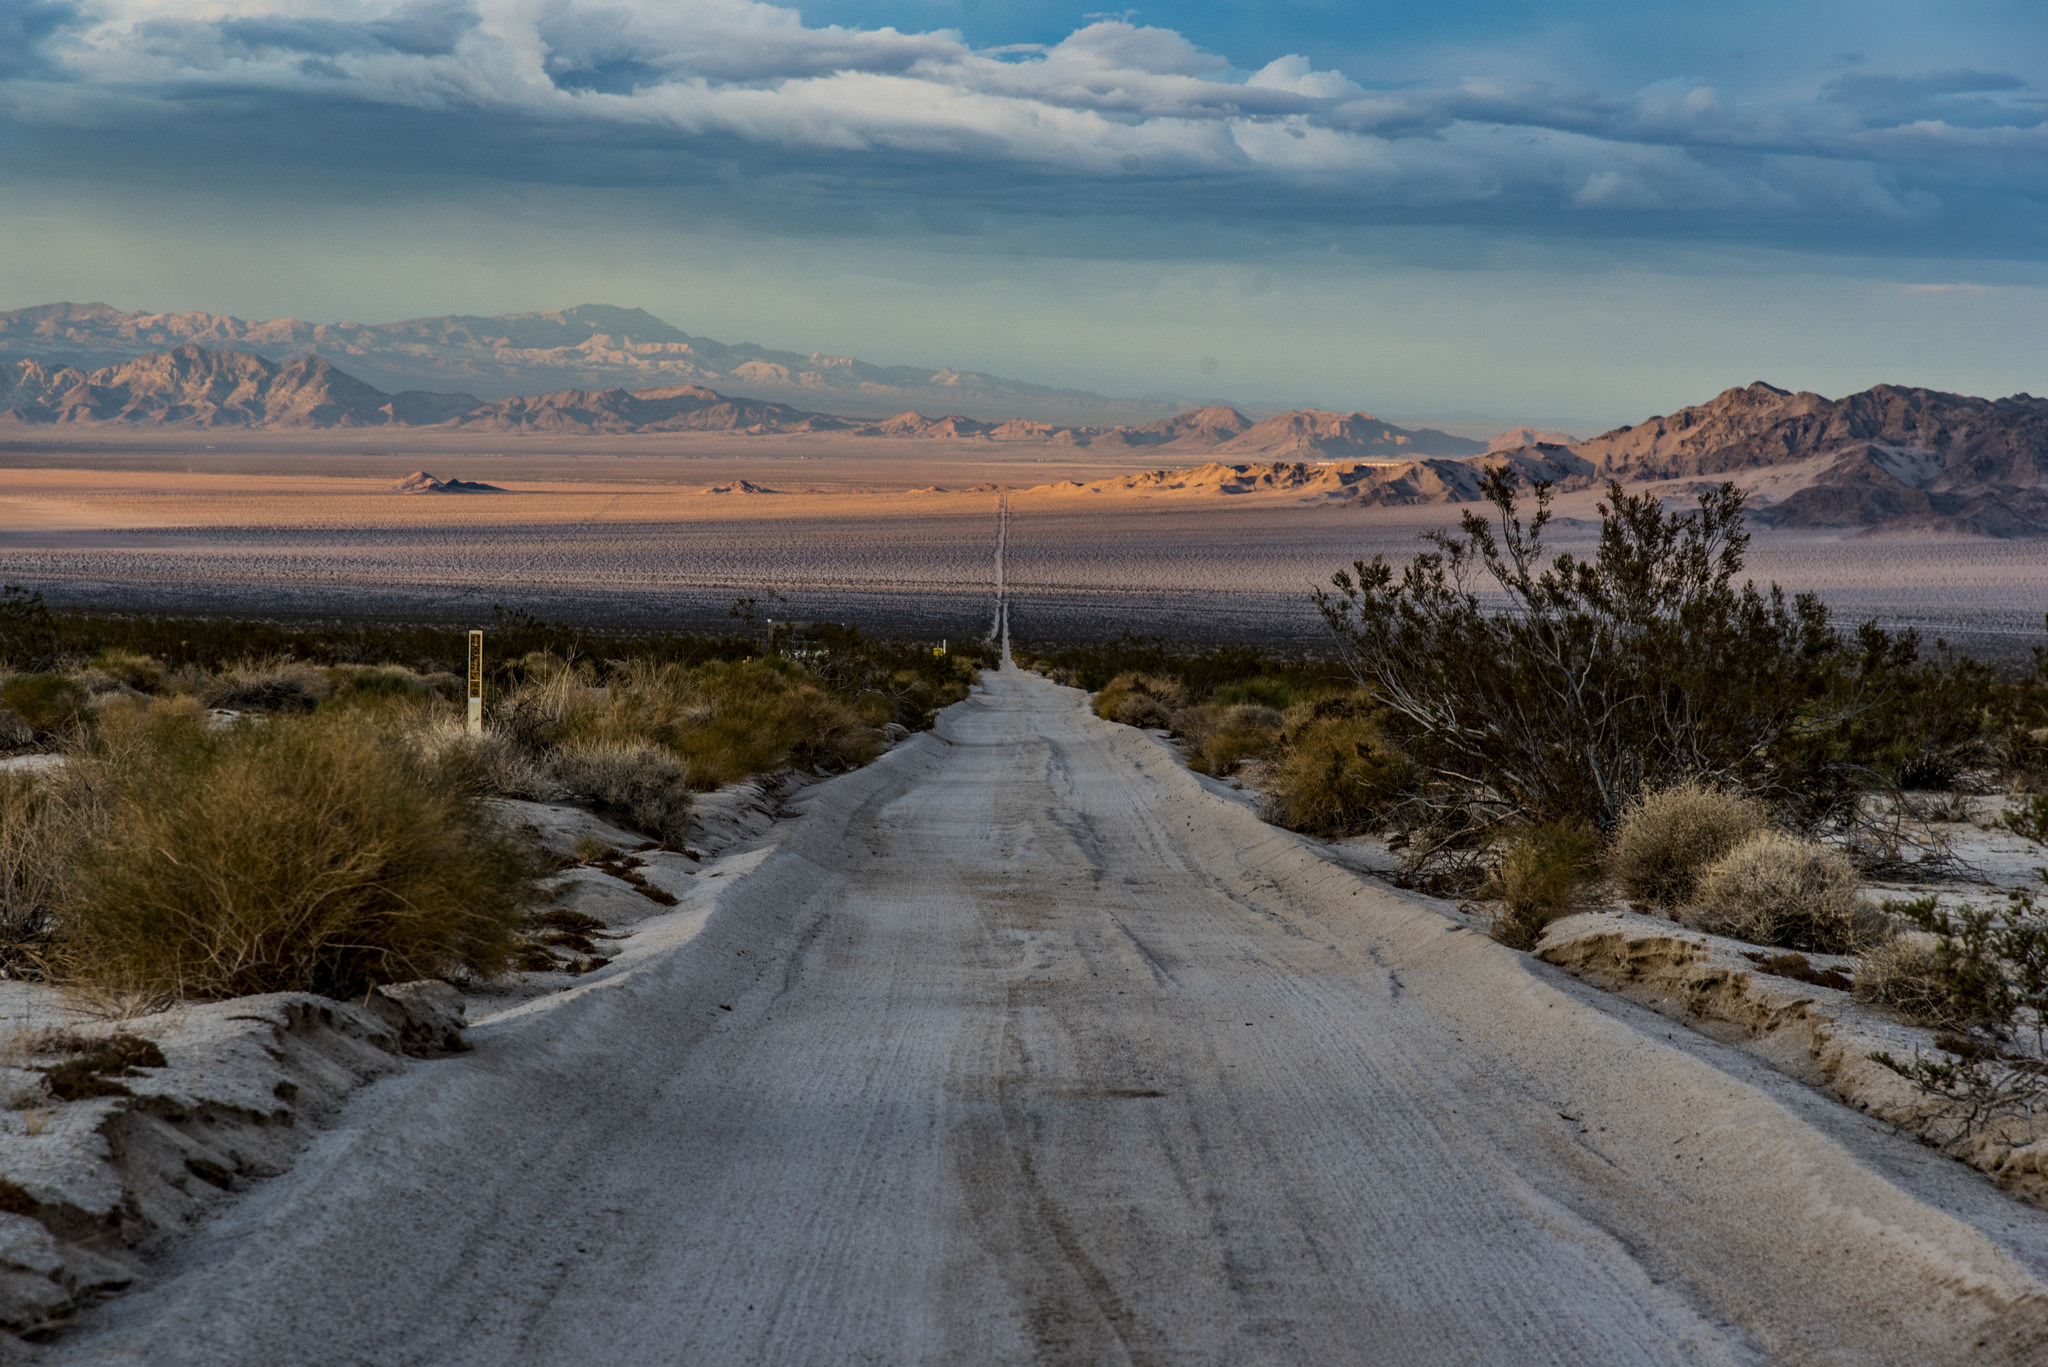 Extracting water from beneath the Mojave Desert would devastate the surrounding ecosystem.